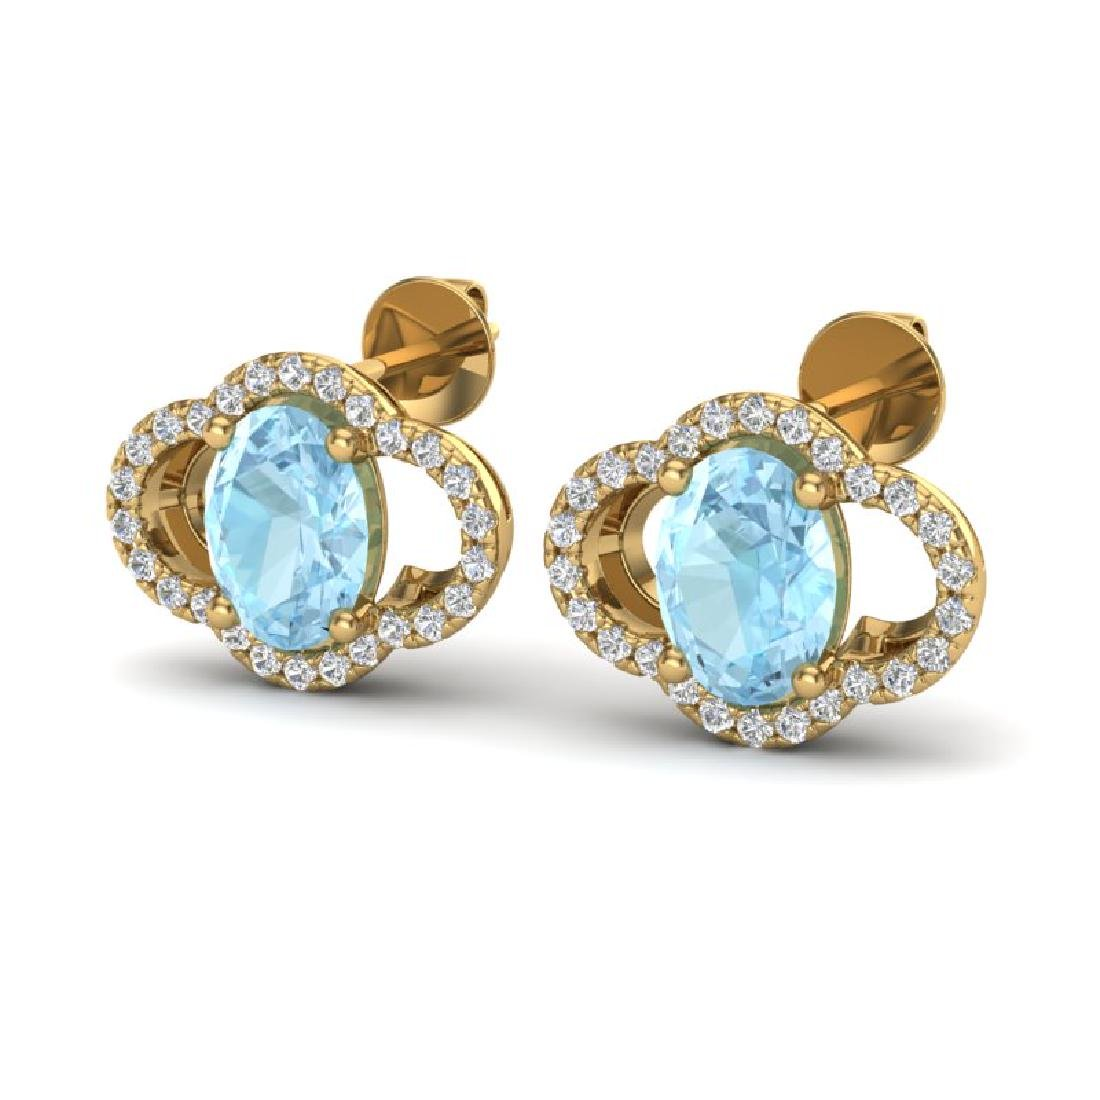 4 CTW Aquamarine & Micro Pave VS/SI Diamond Earrings